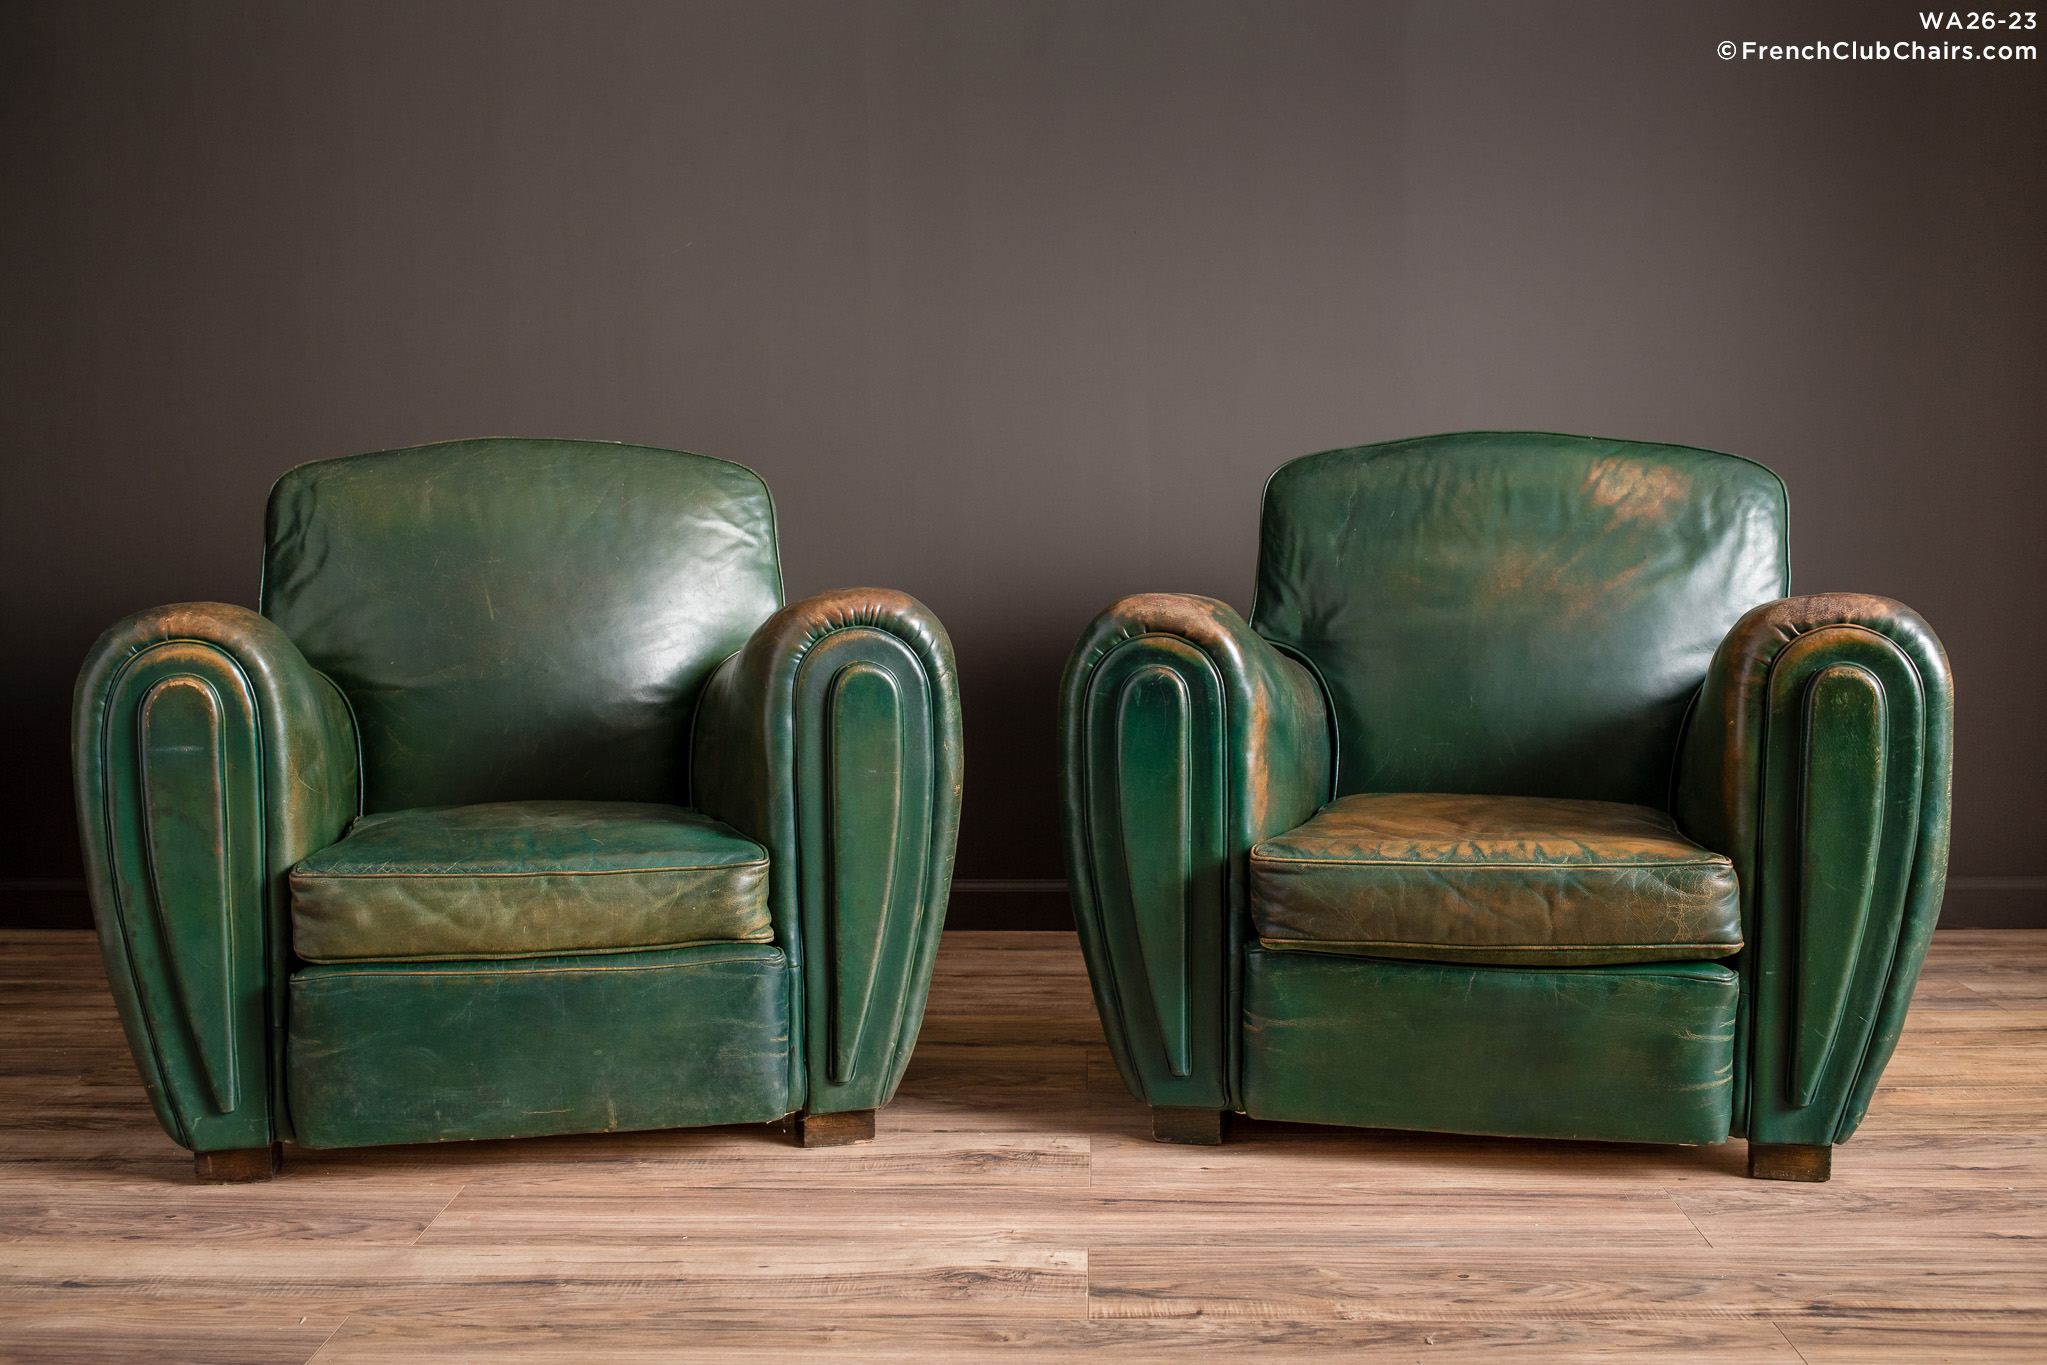 WA_26-23_Chairs_Green_Salon_Library_R_1TQ-v01-williams-antiks-leather-french-club-chair-wa_fcccom